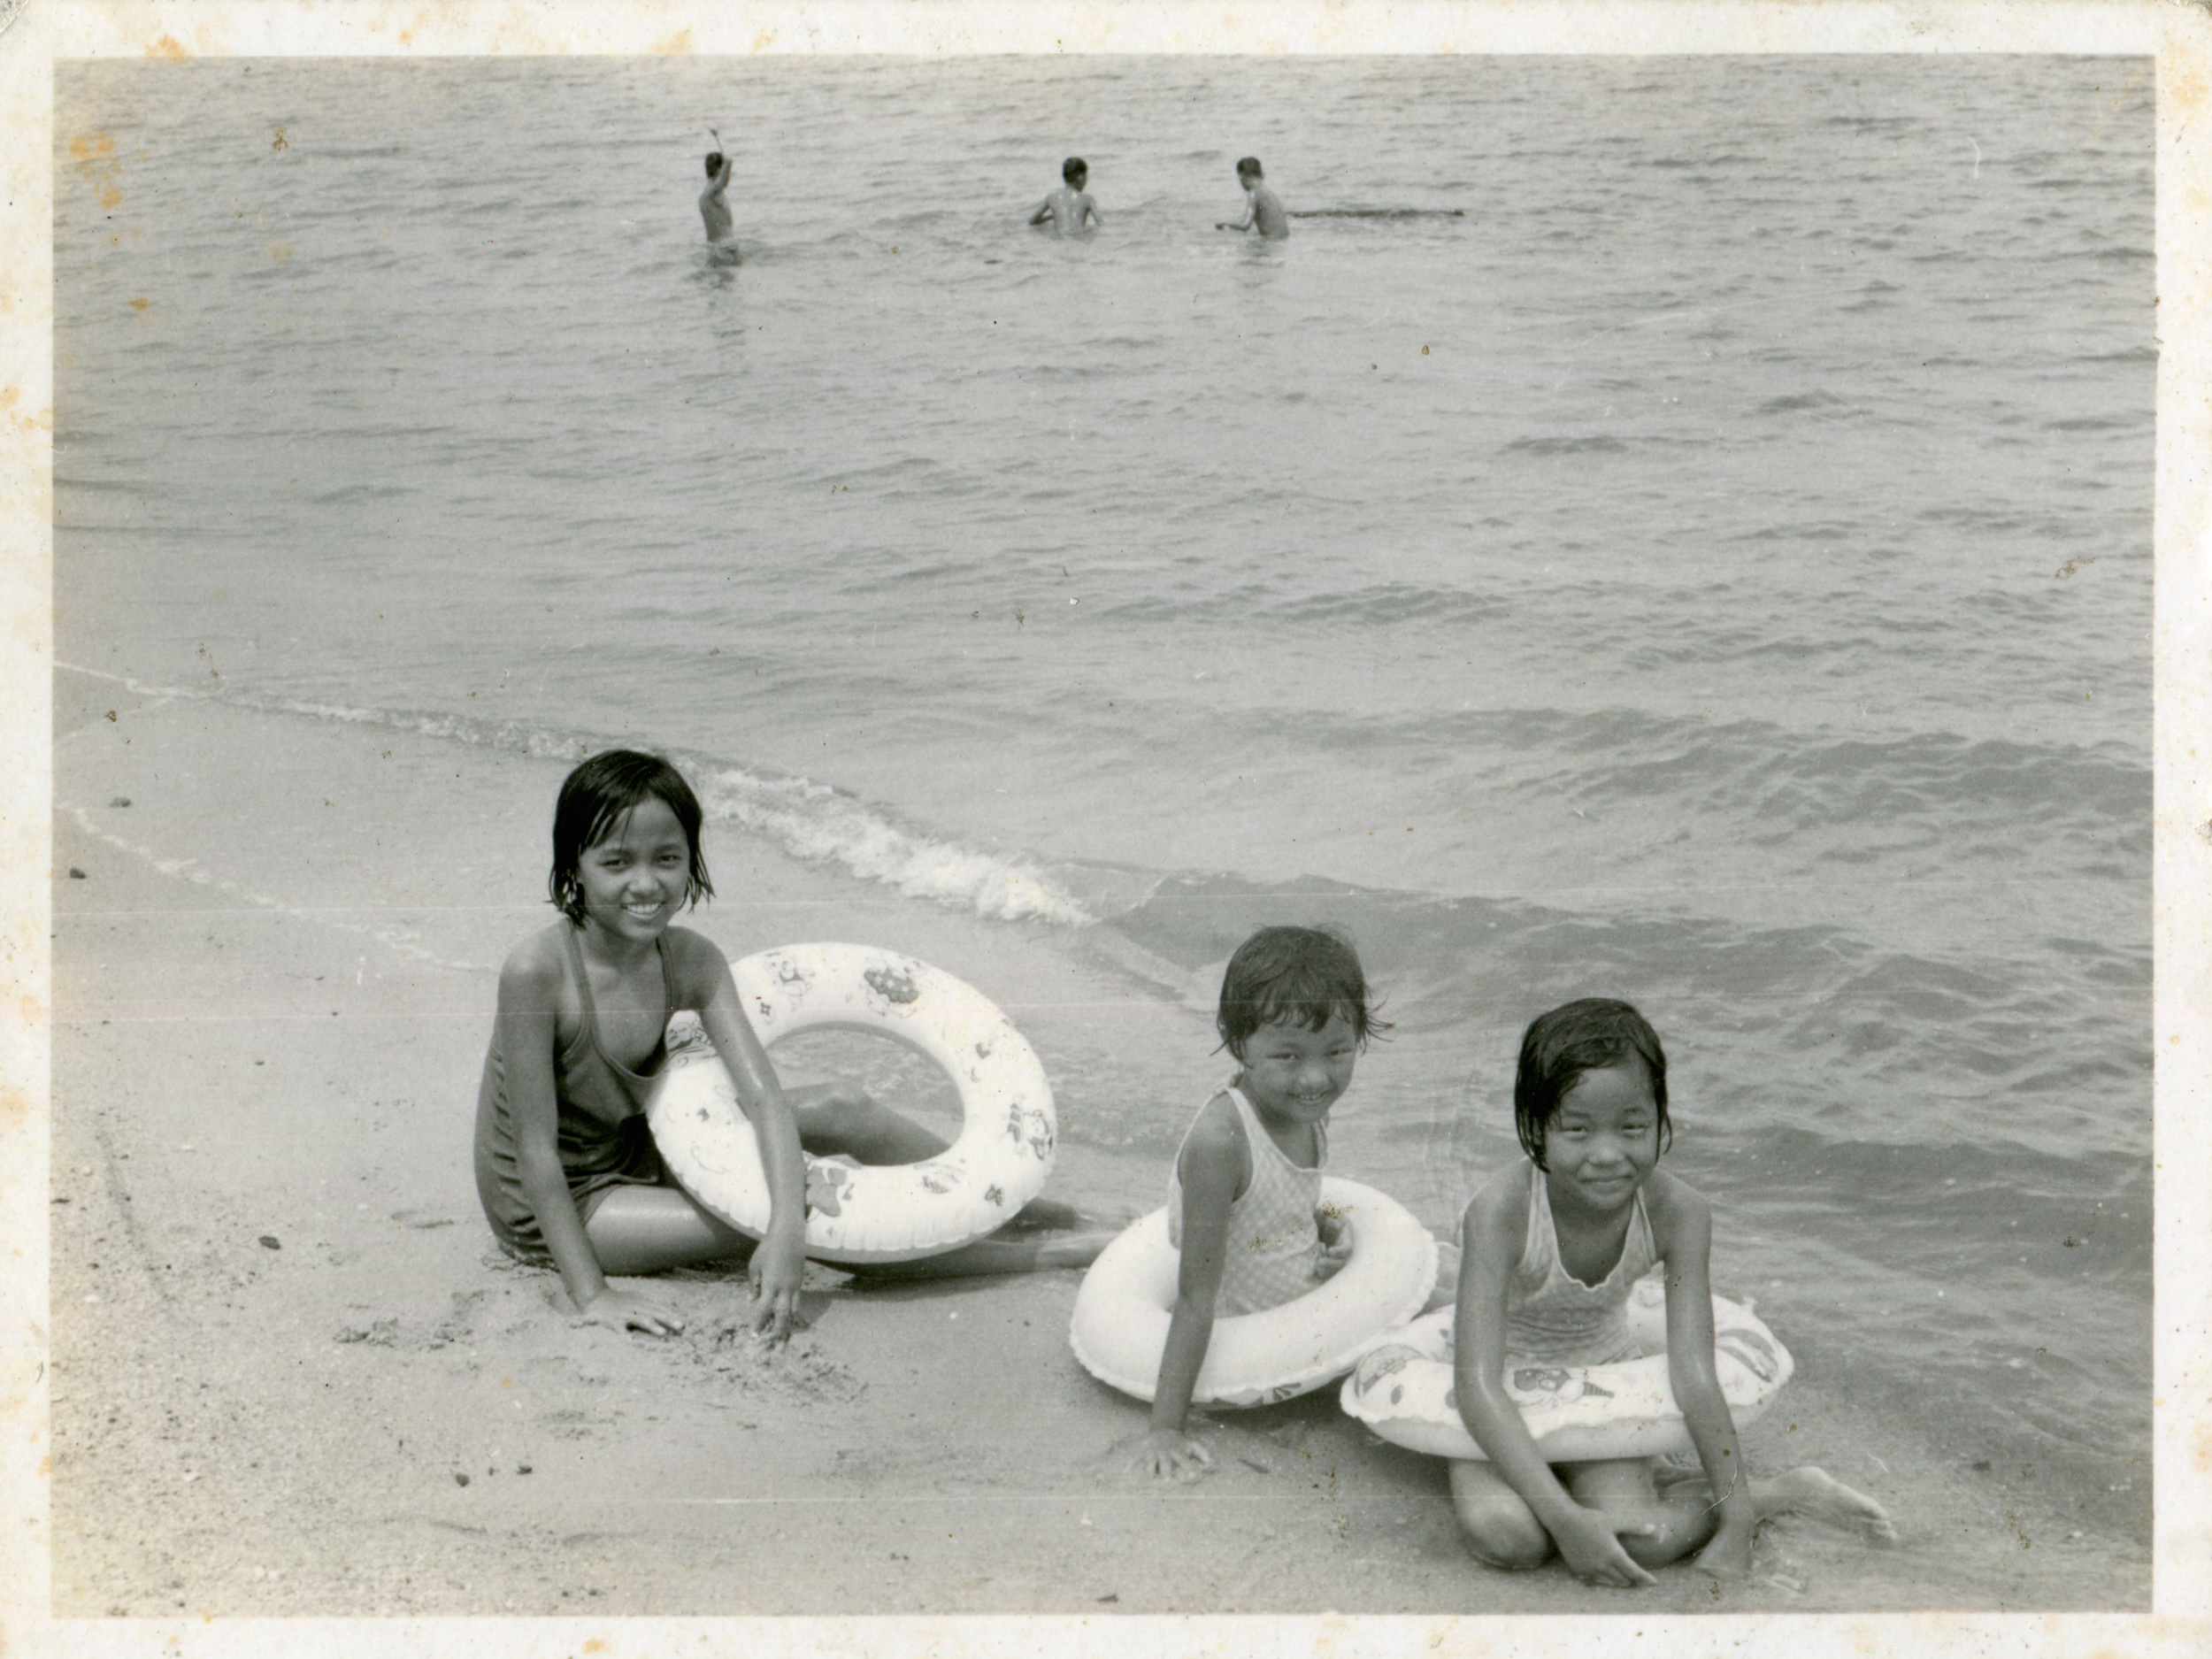 Mangalsing Tamang's daughters at Pasir Ris beach. Date: Early 1970s. Photo Collection: Aswin Moktan / SGPM.